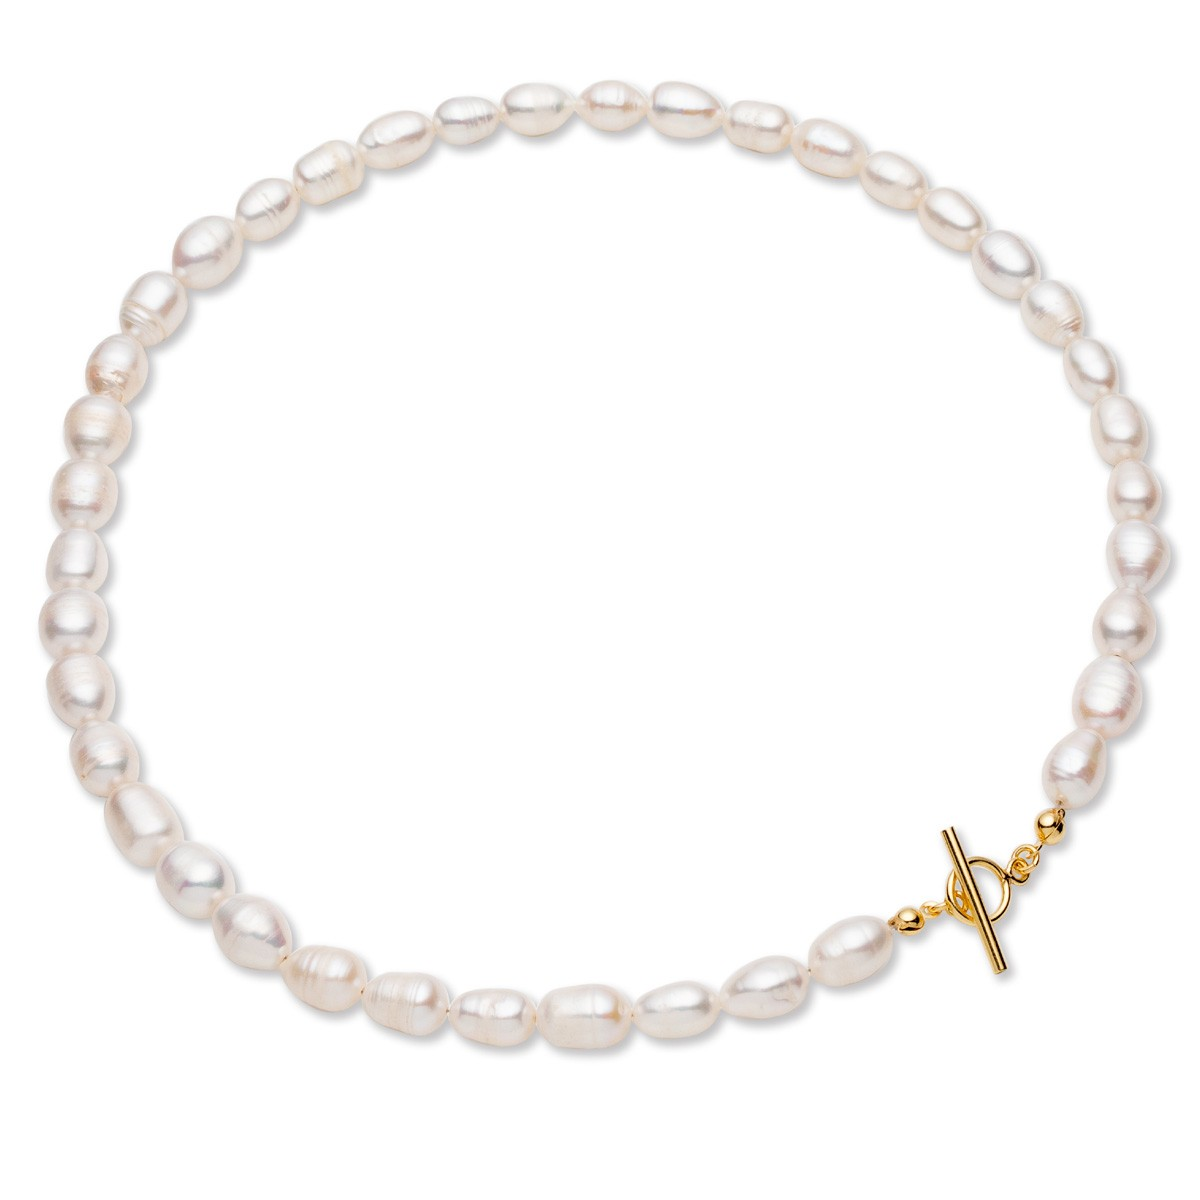 Flexible white freshwater pearls, sterling silver 925